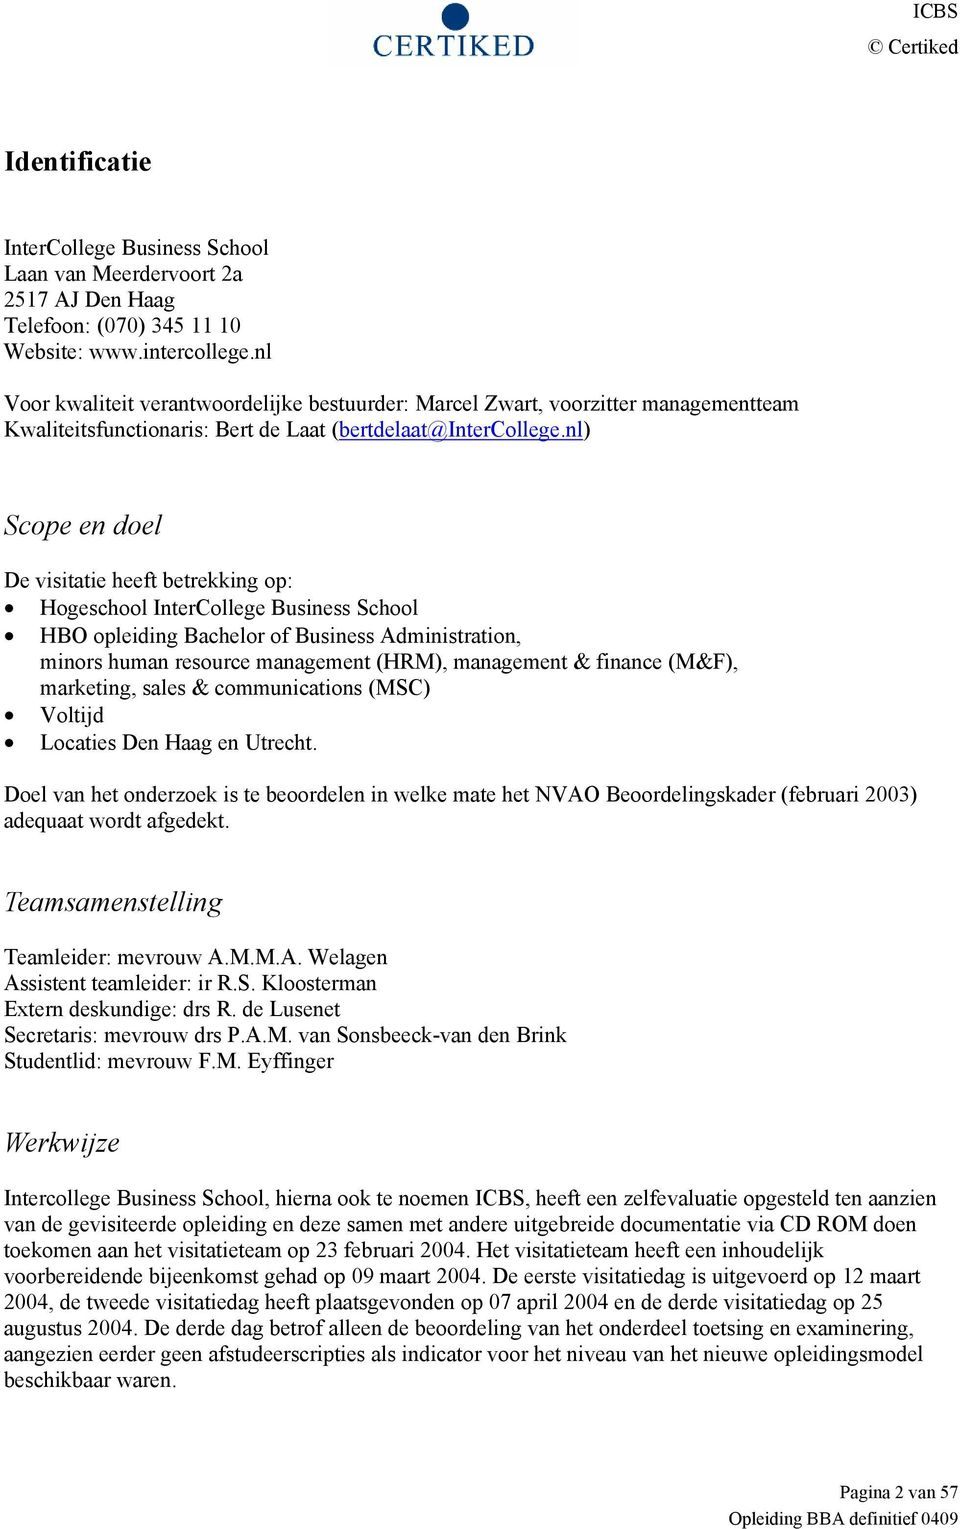 nl) Scope en doel De visitatie heeft betrekking op: Hogeschool InterCollege Business School HBO opleiding Bachelor of Business Administration, minors human resource management (HRM), management &